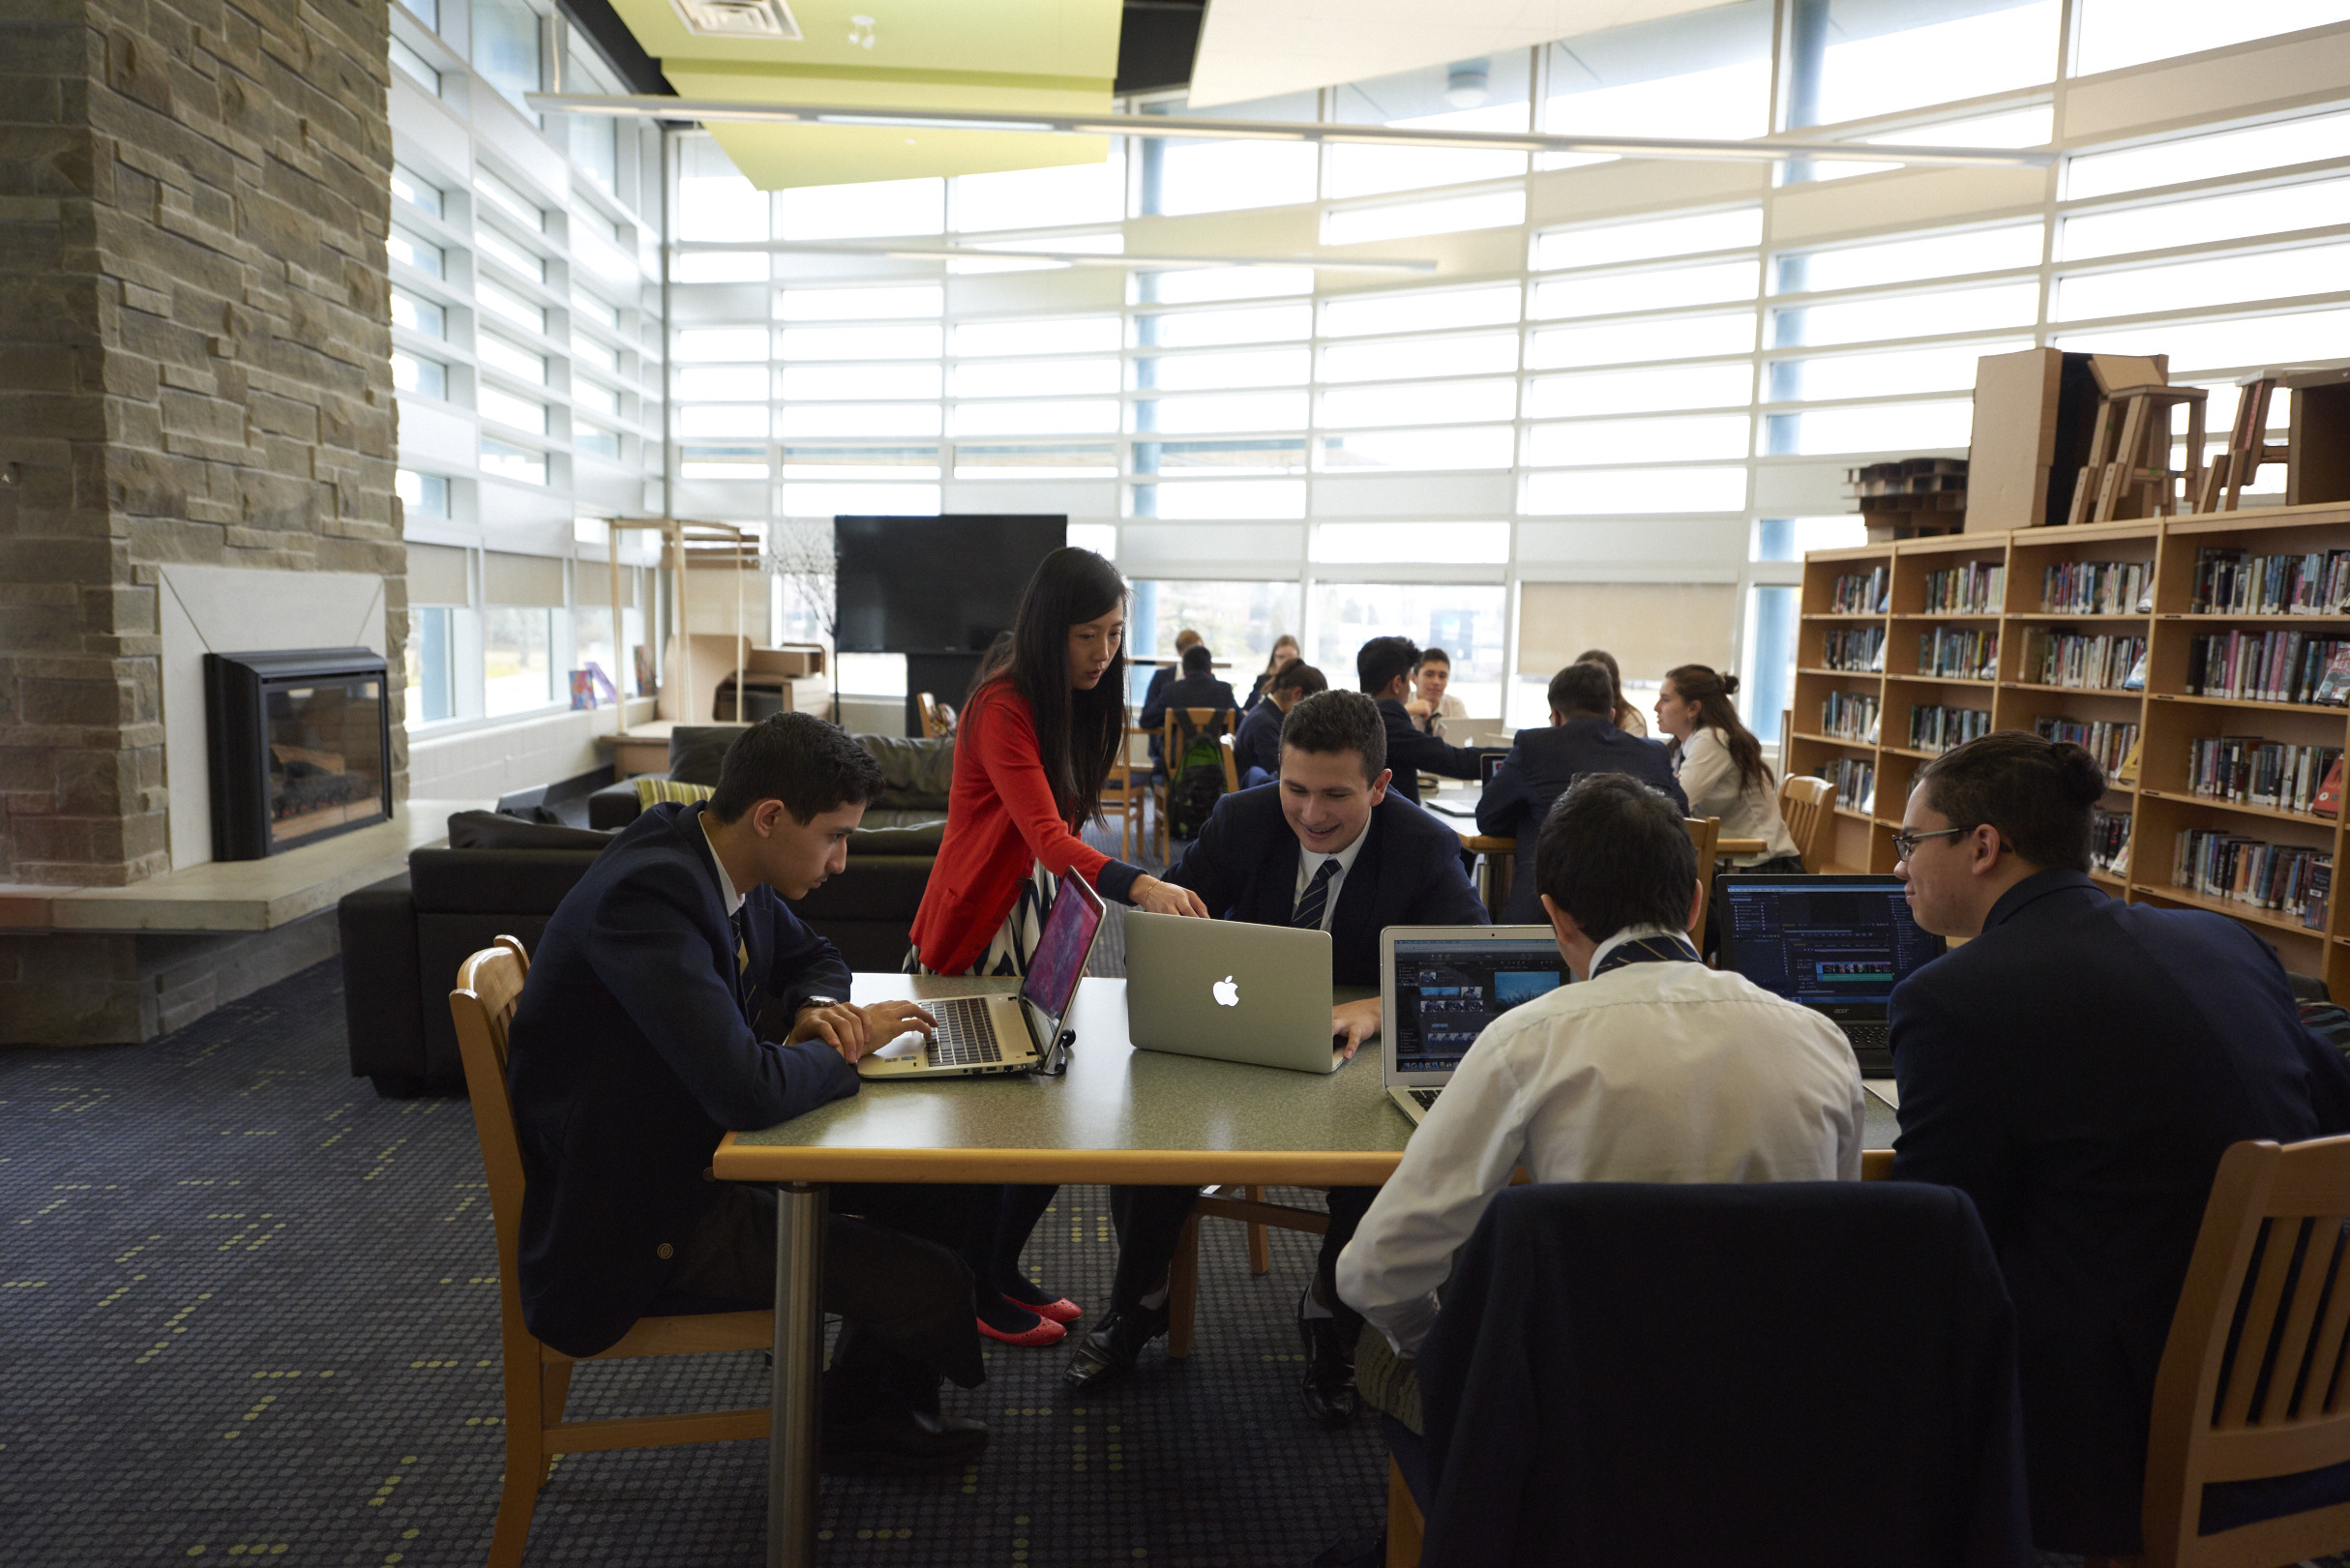 upper school students working in the library